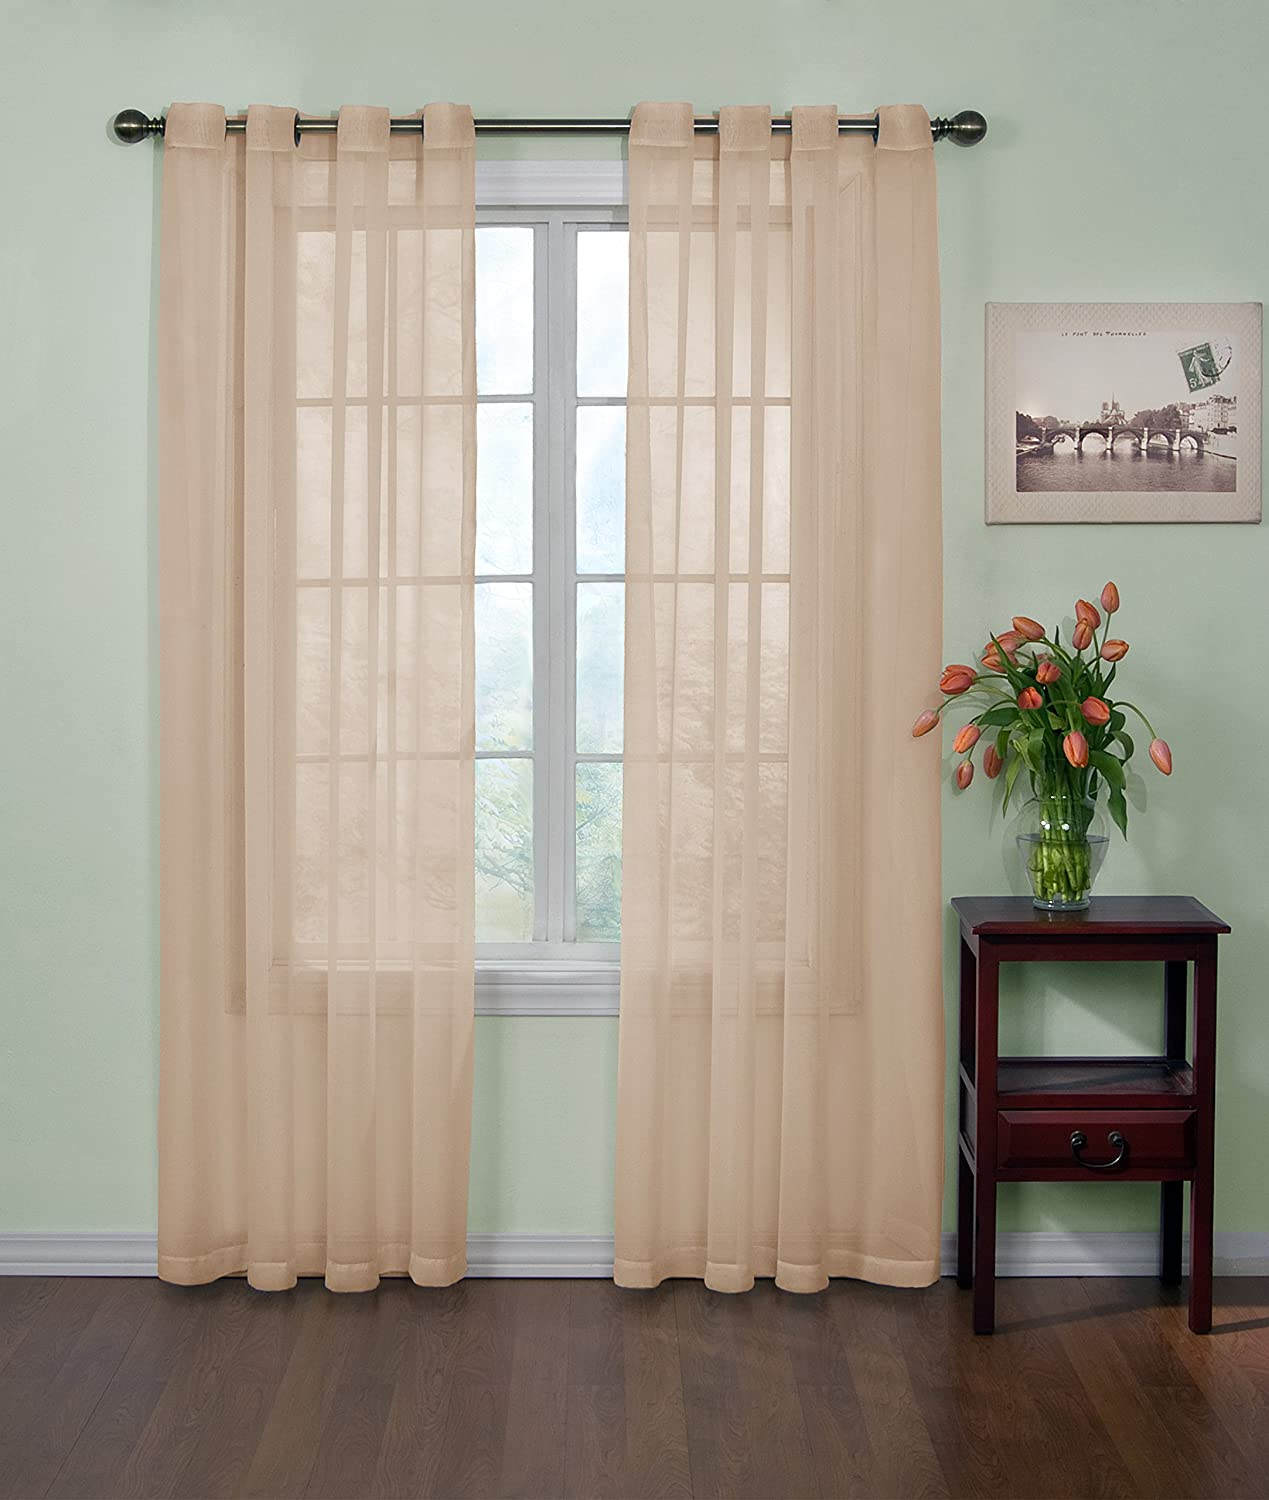 Arm and Hammer Curtain Fresh Odor Neutralizing Sheer Curtain Panel, 120 Inches, Latte